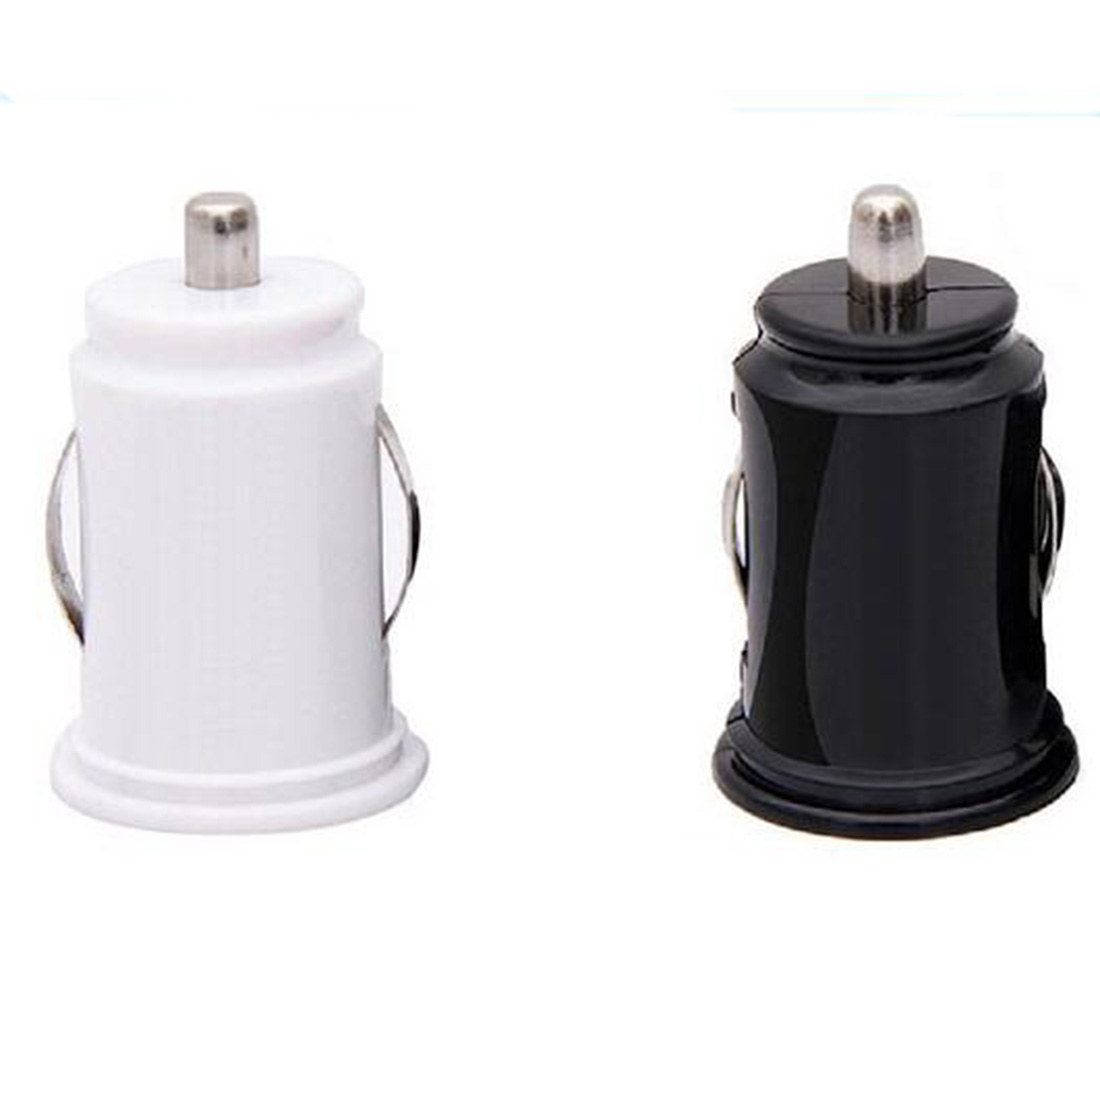 Universal 2.1A 5V Dual USB car charger 2 port Cigarette Lighter Adapter Charger USB Power Adapter For all smart phones